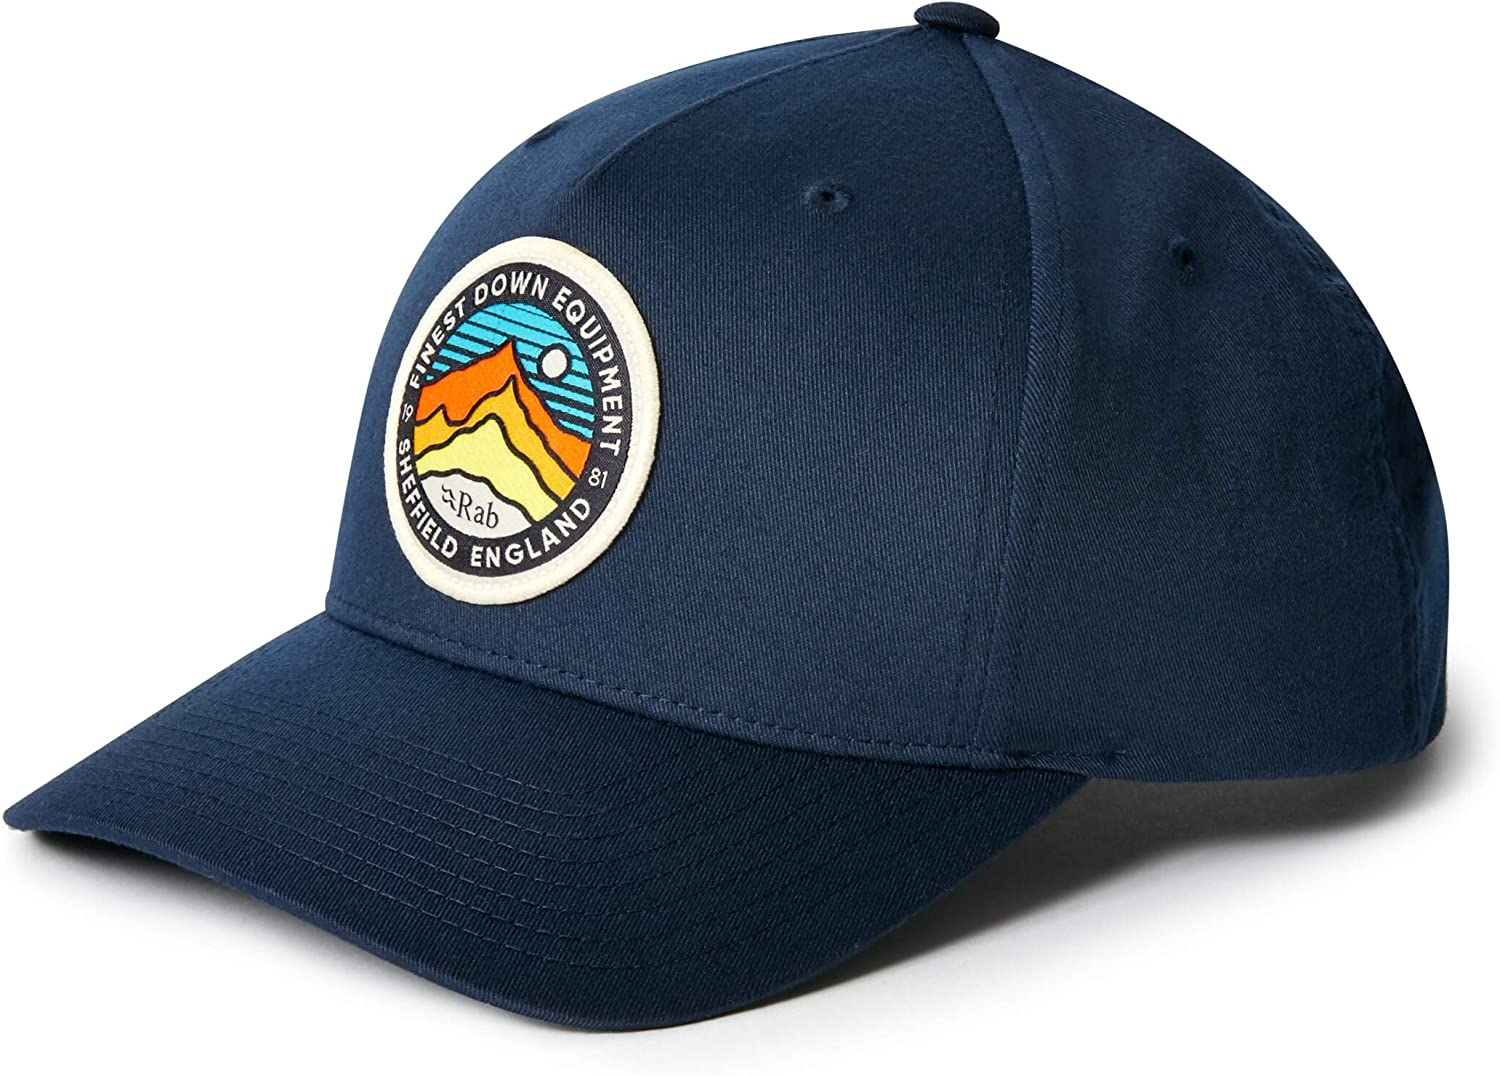 Popular products RAB Base Cap lowest price